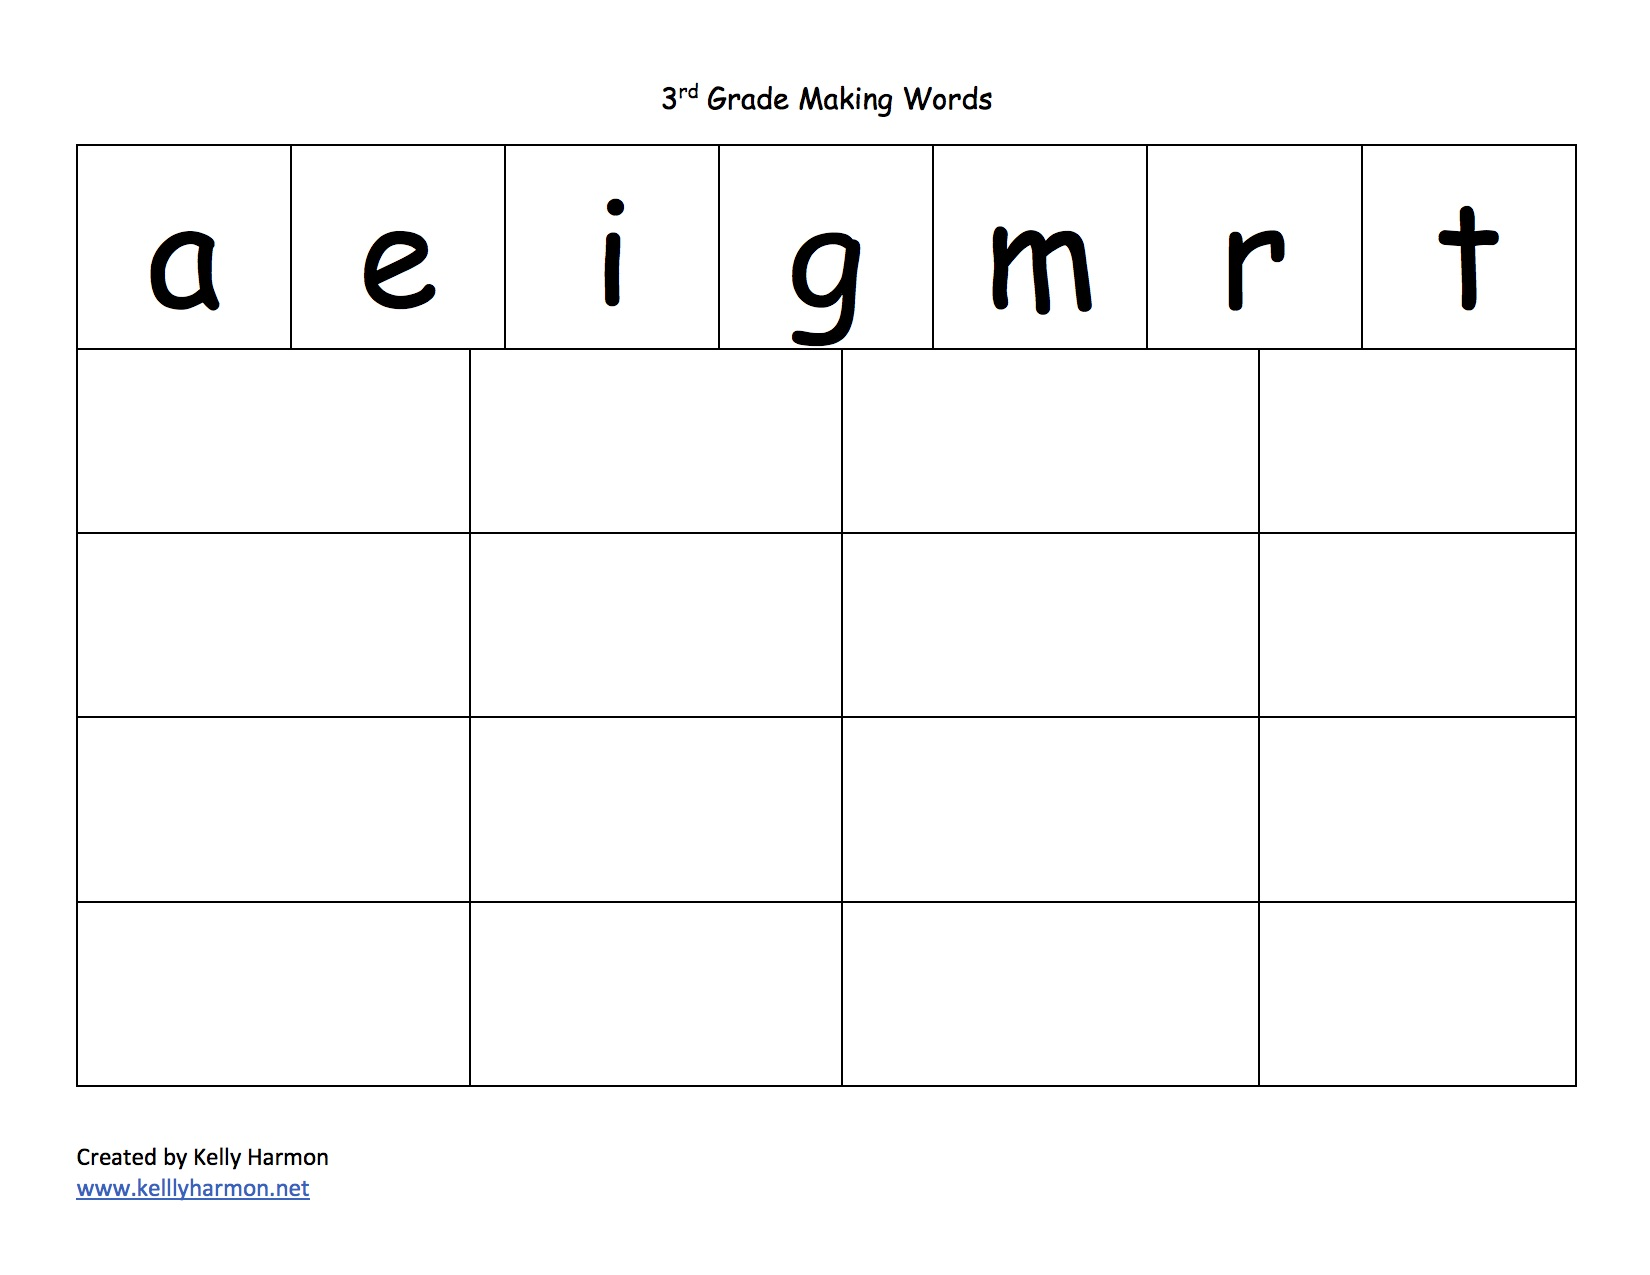 3rd Grade-10 Weeks of Making Words